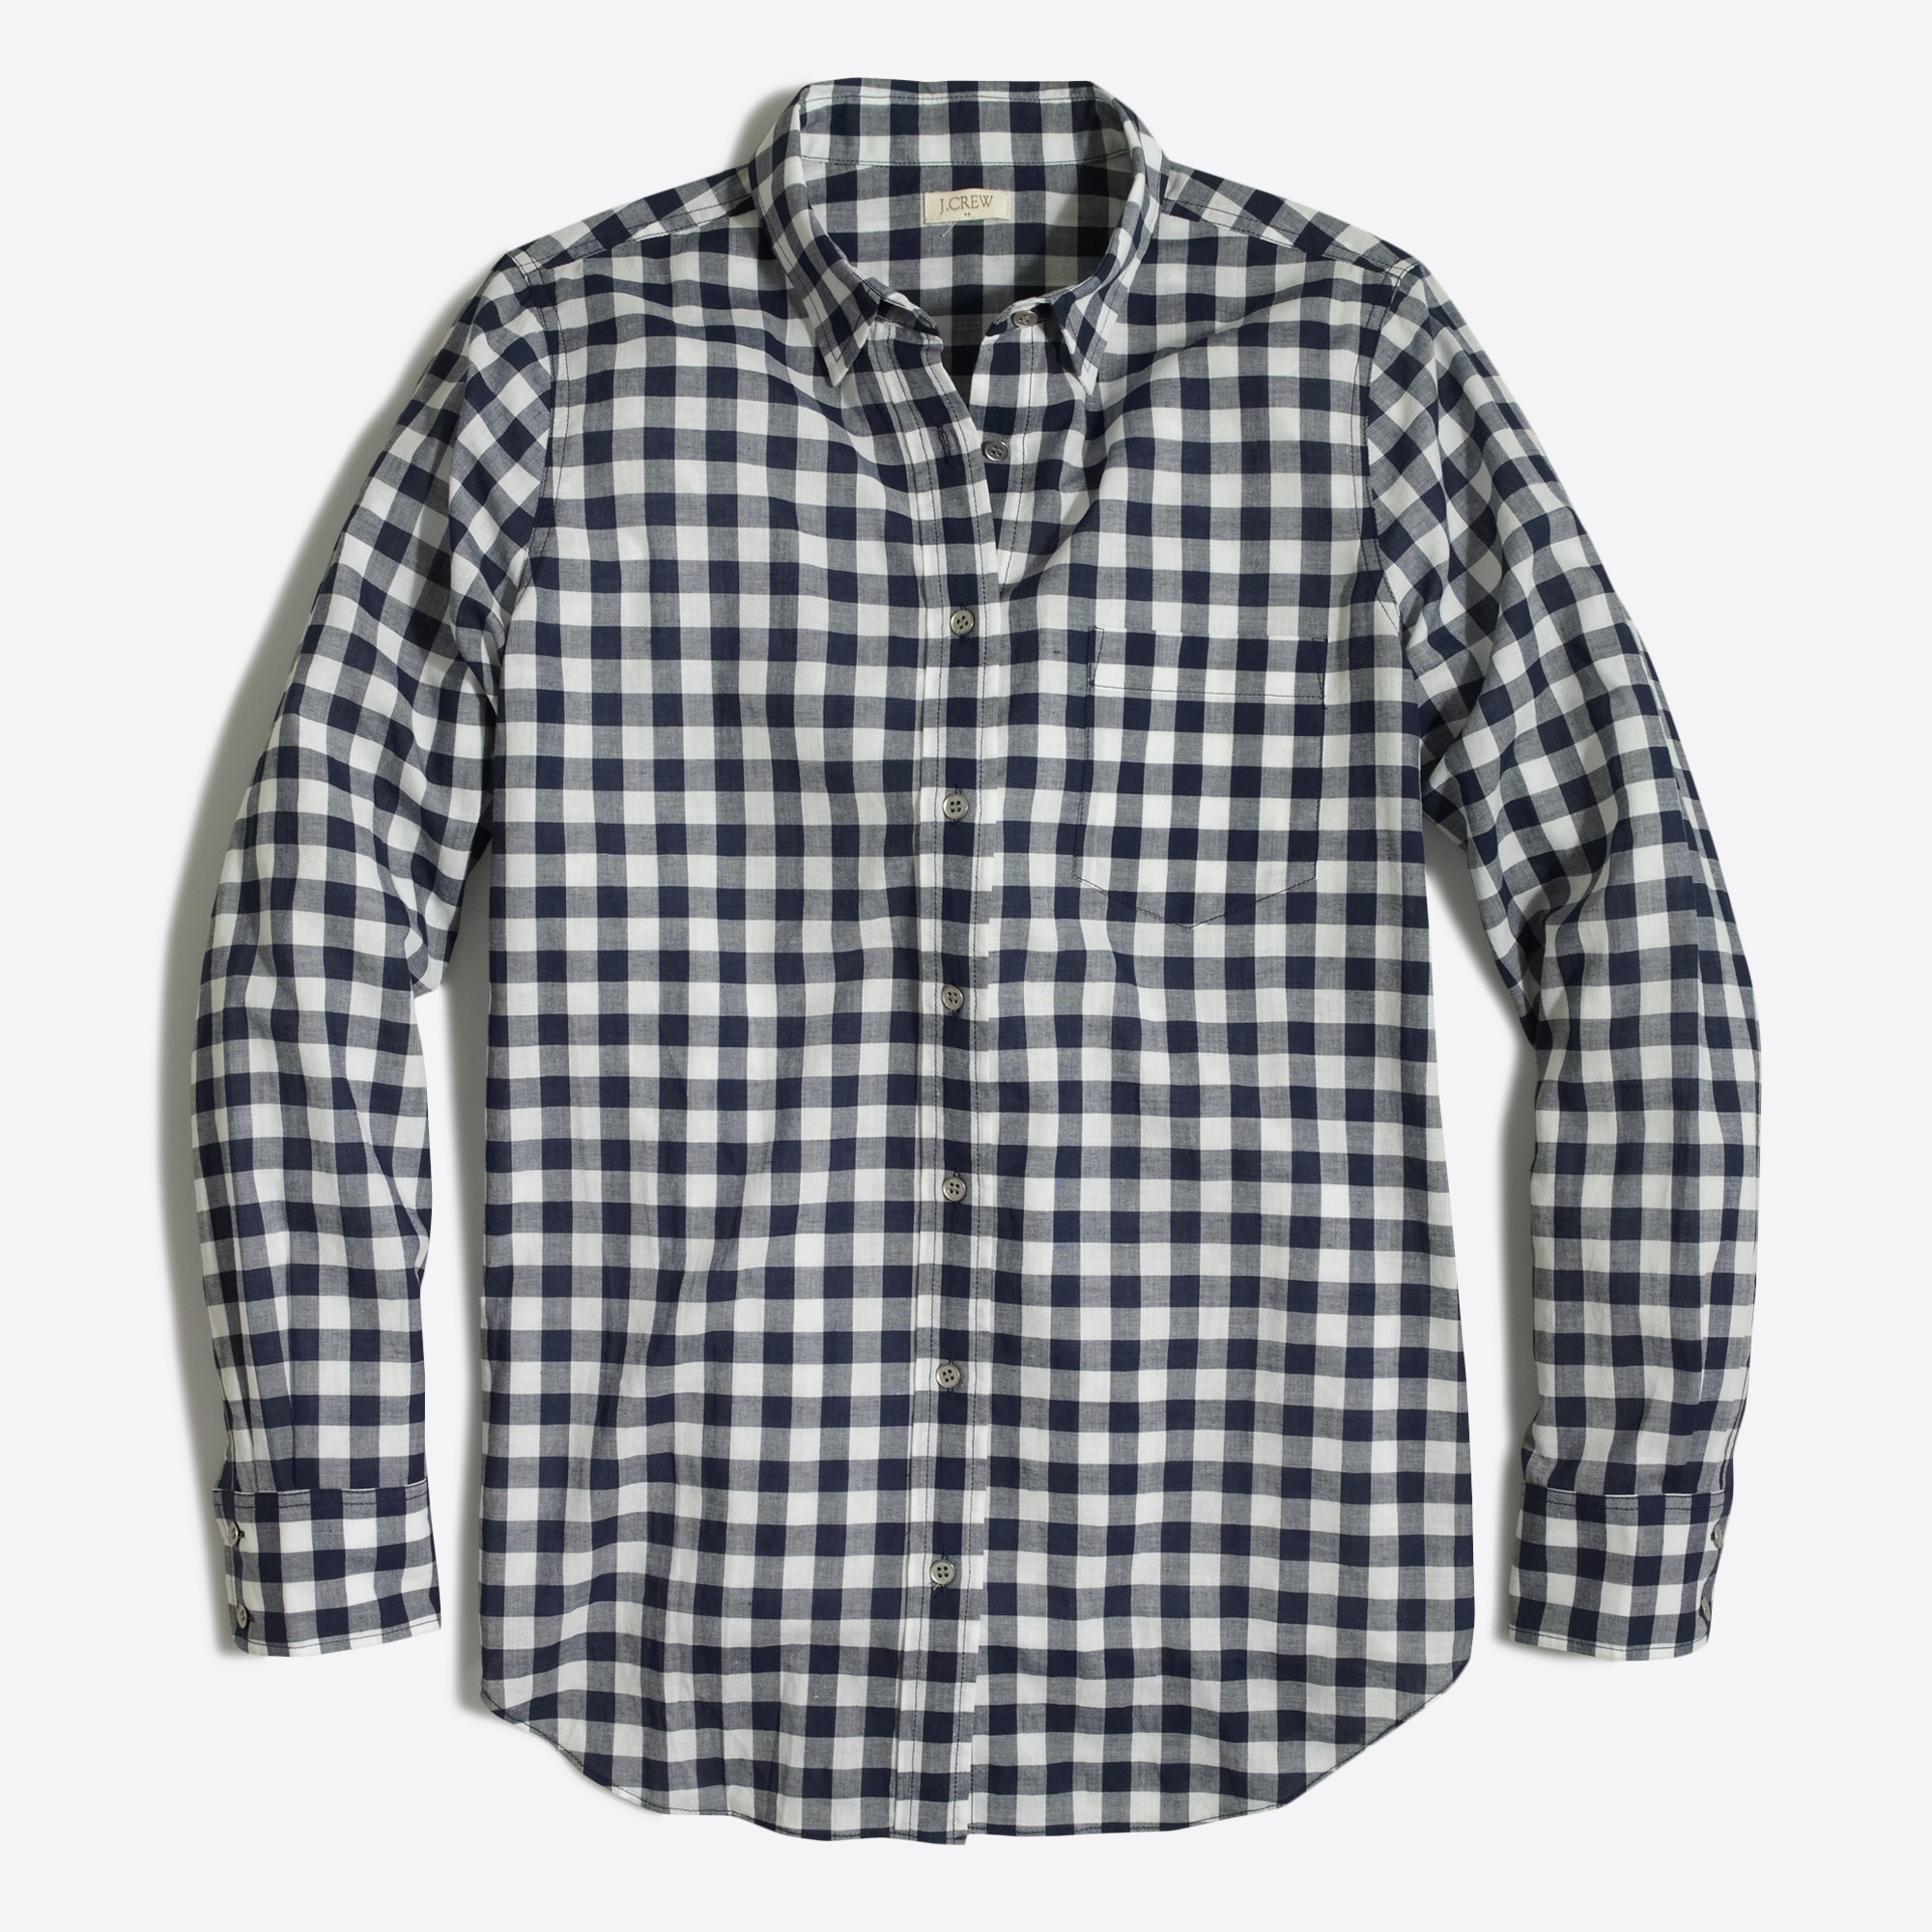 Image 2 for Gingham classic button-down shirt in boy fit